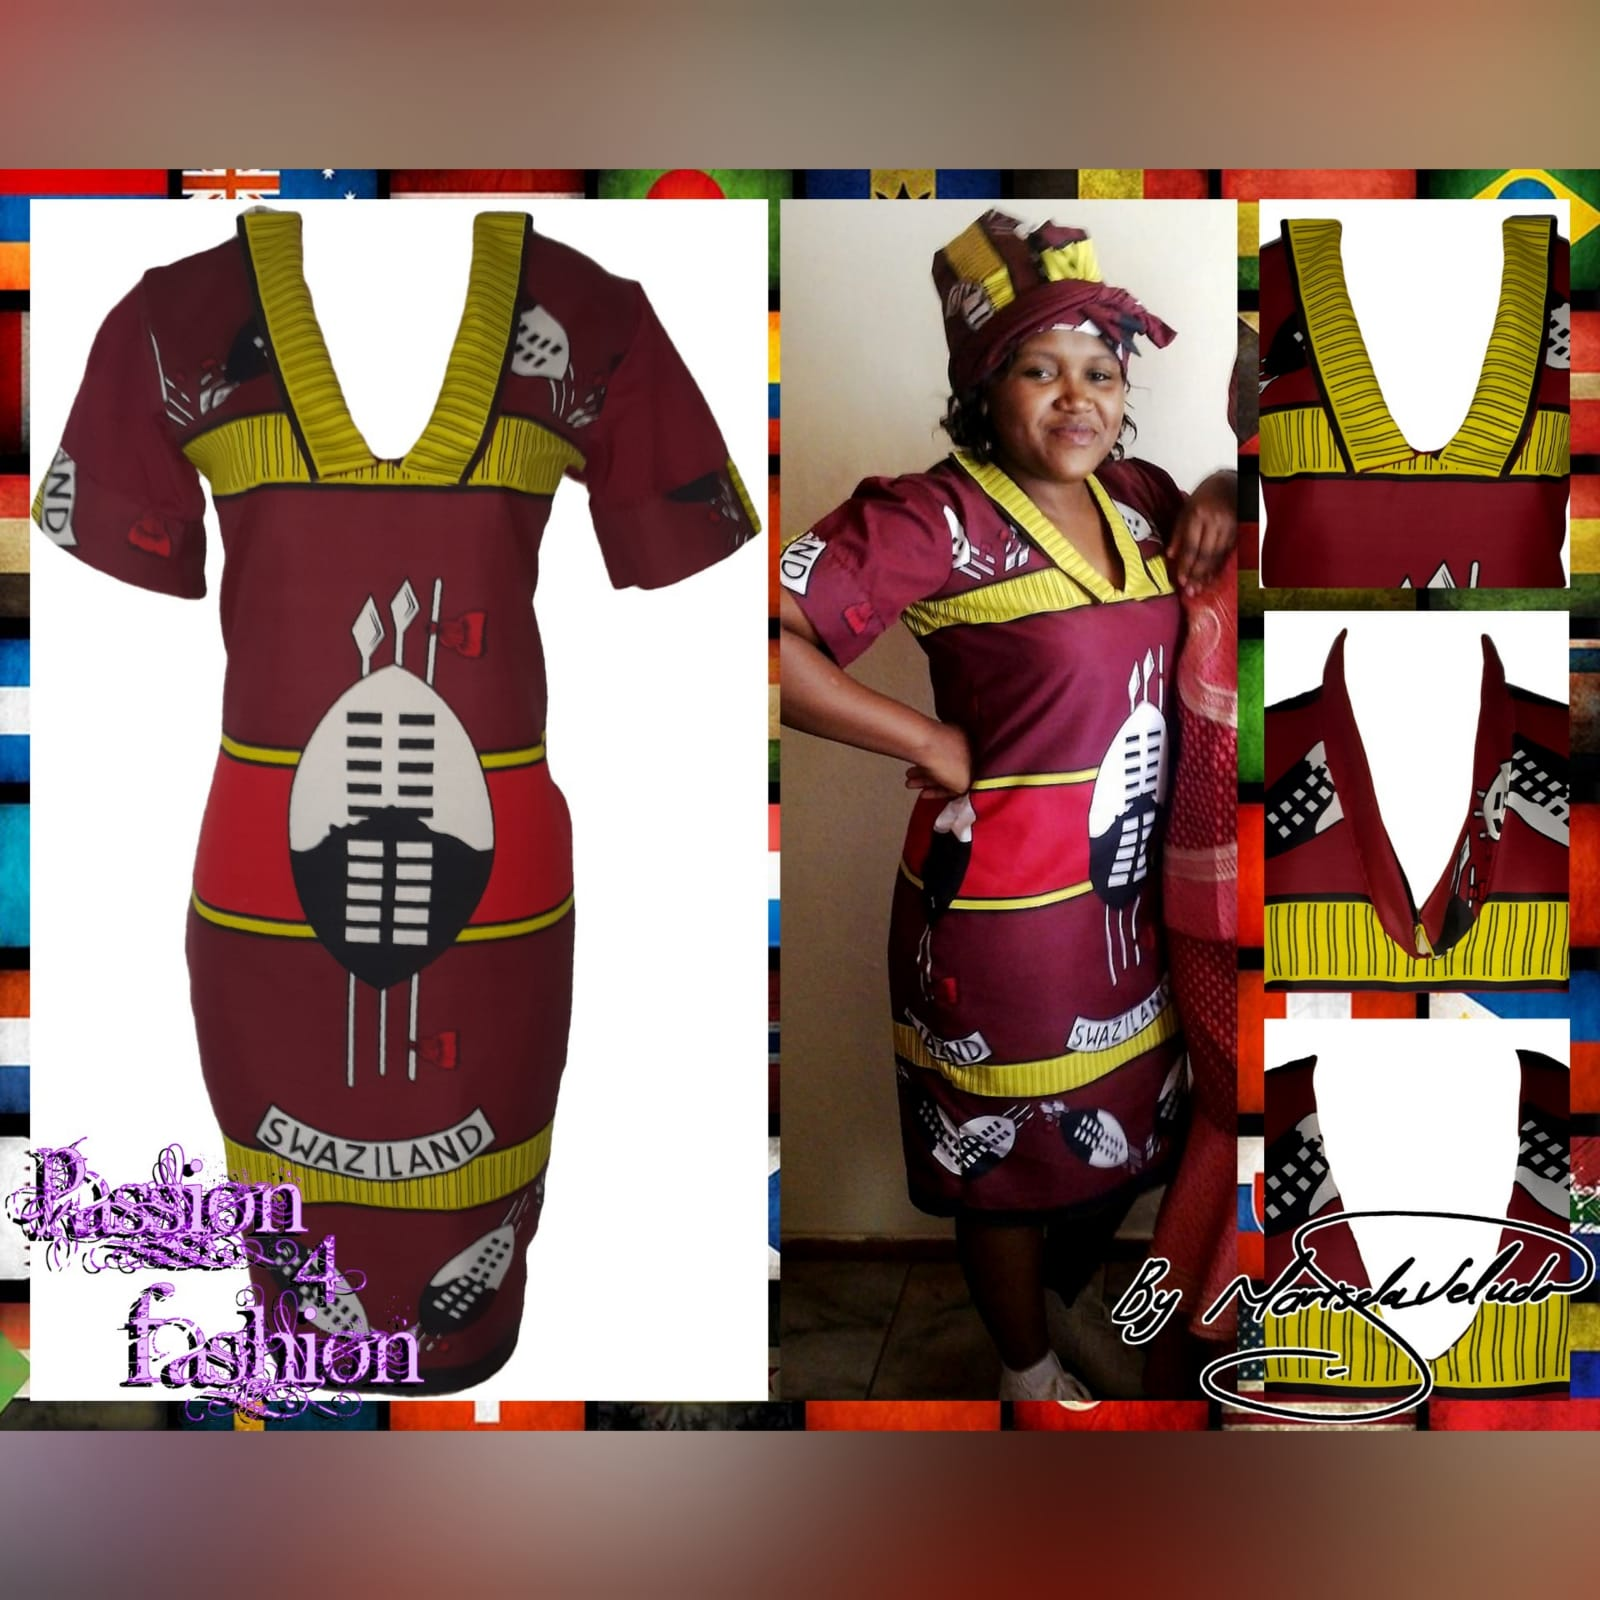 Traditional swati dress with matching swati doek 6 traditional swati dress with a v neckline, finished with a collar design that can be worn in 3 different ways. With a matching swati doek.